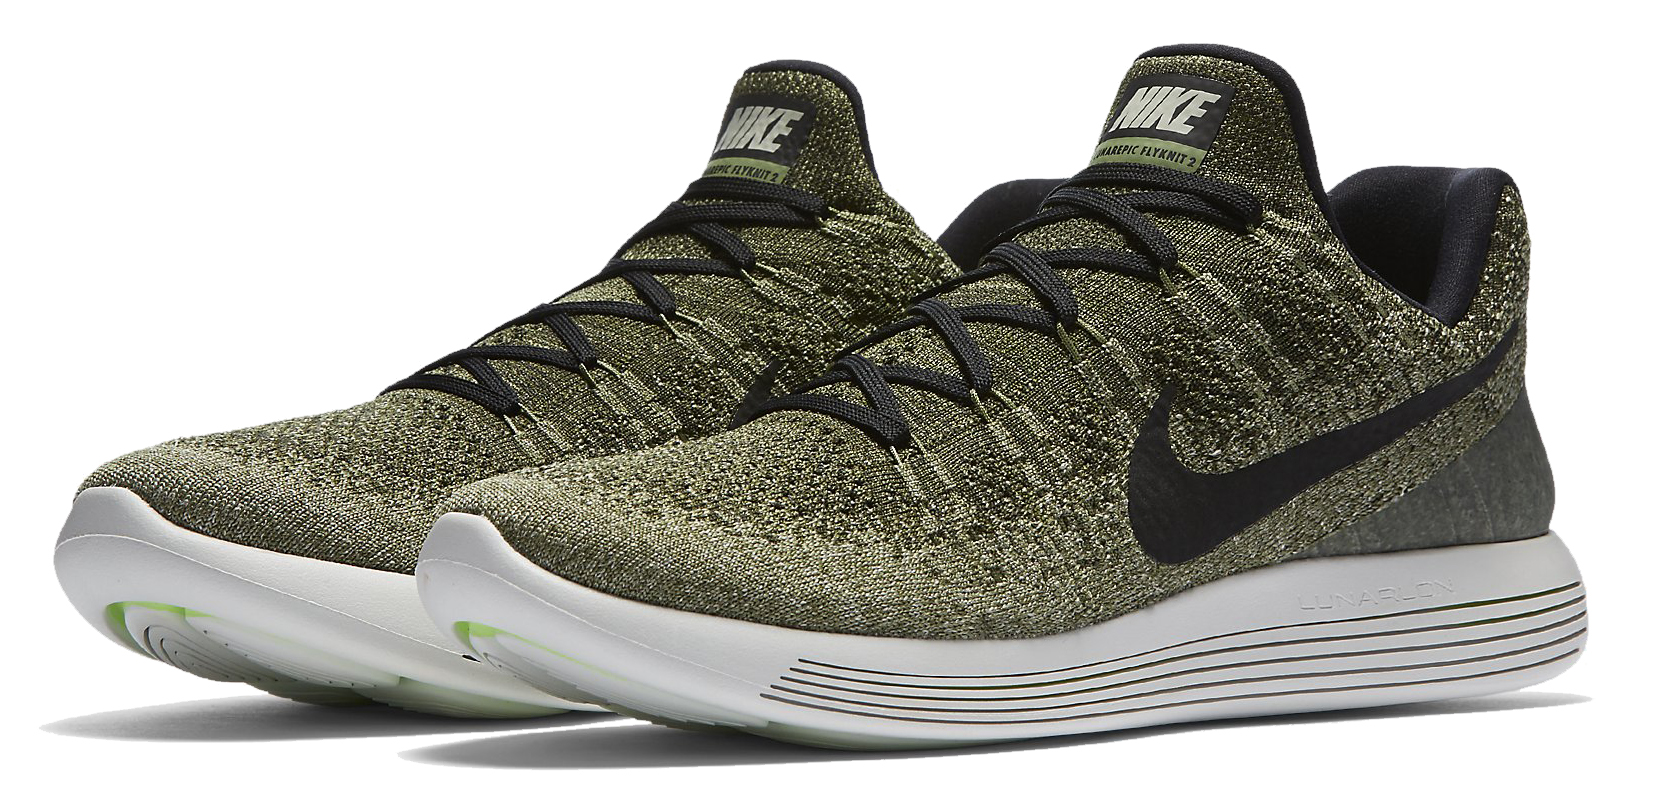 half off a4be9 ae742 Nike LunarEpic Low Flyknit 2 Road Running Shoes - Men's Nike Free ...